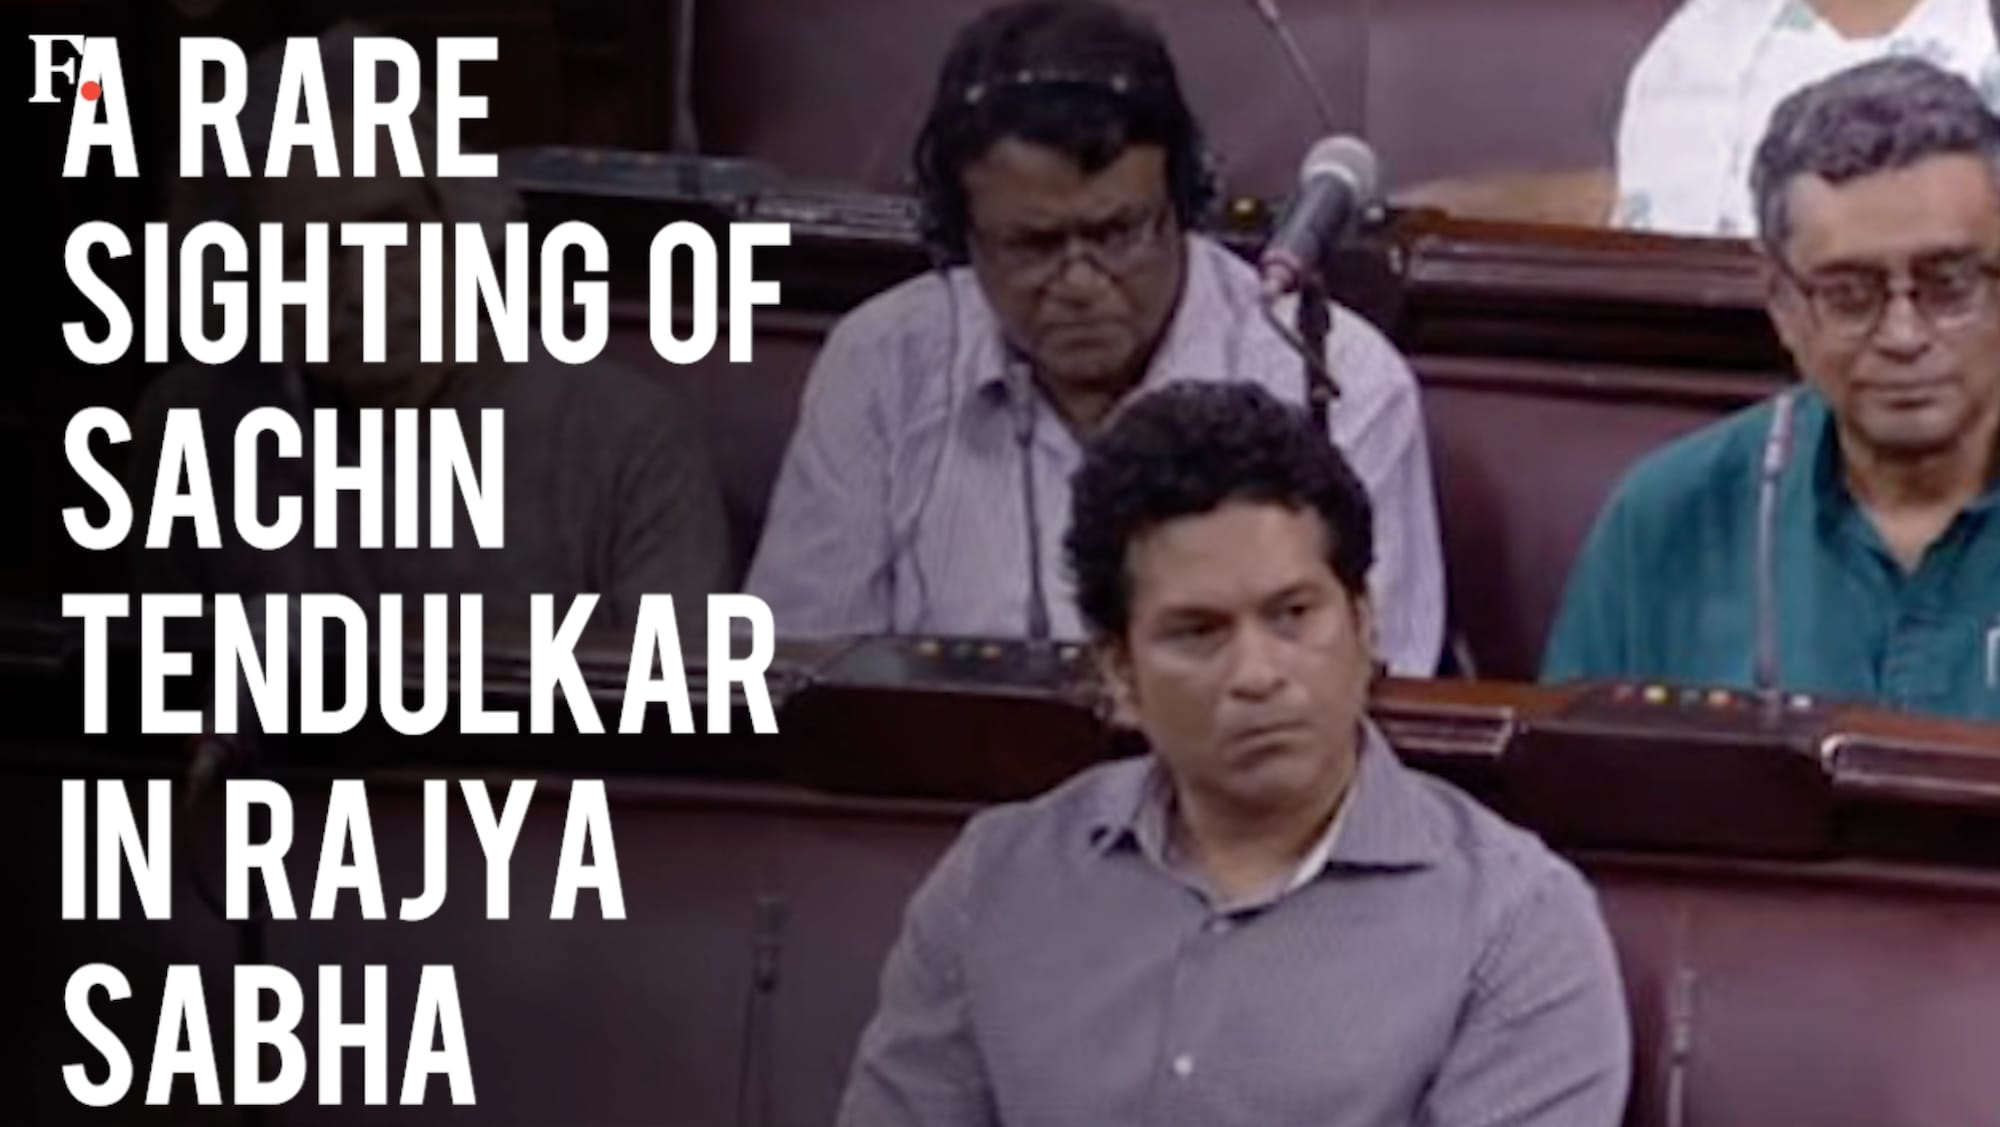 Sachin Tendulkar attends Rajya Sabha: 'Master bunker' gets trolled on Twitter after rare appearance in Parliament